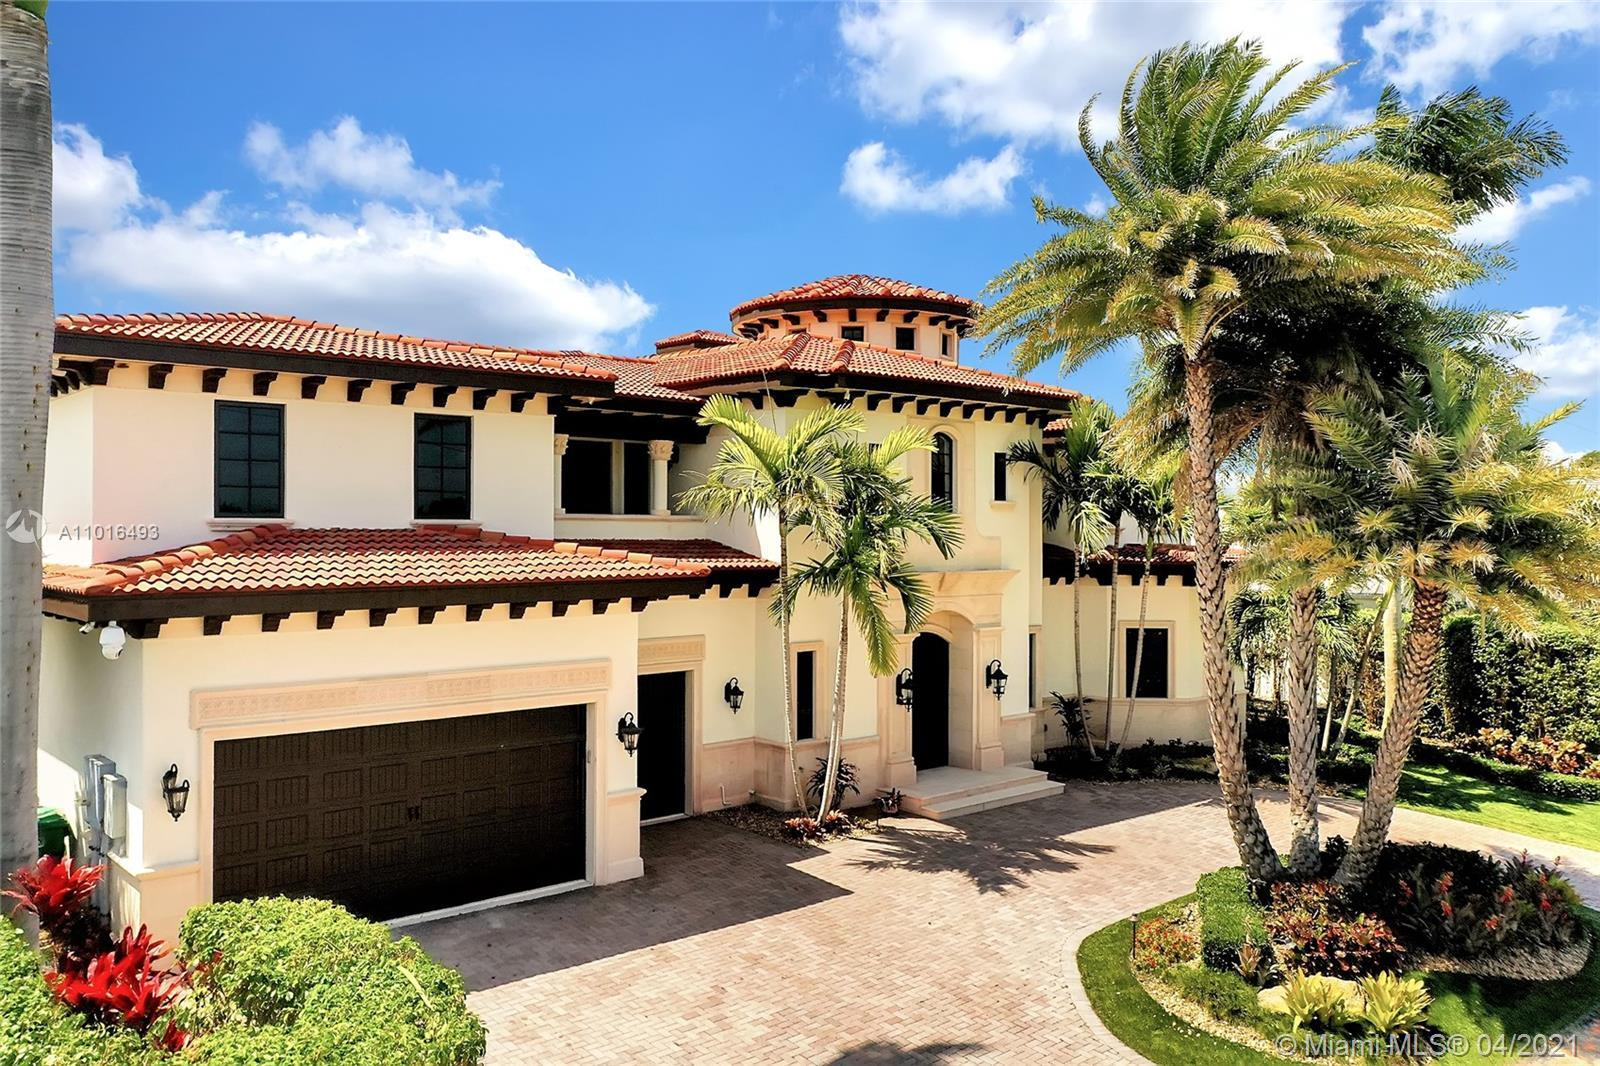 A Boaters Paradise in Palm Beach! This estate home features deep water with a 100' of waterfront for